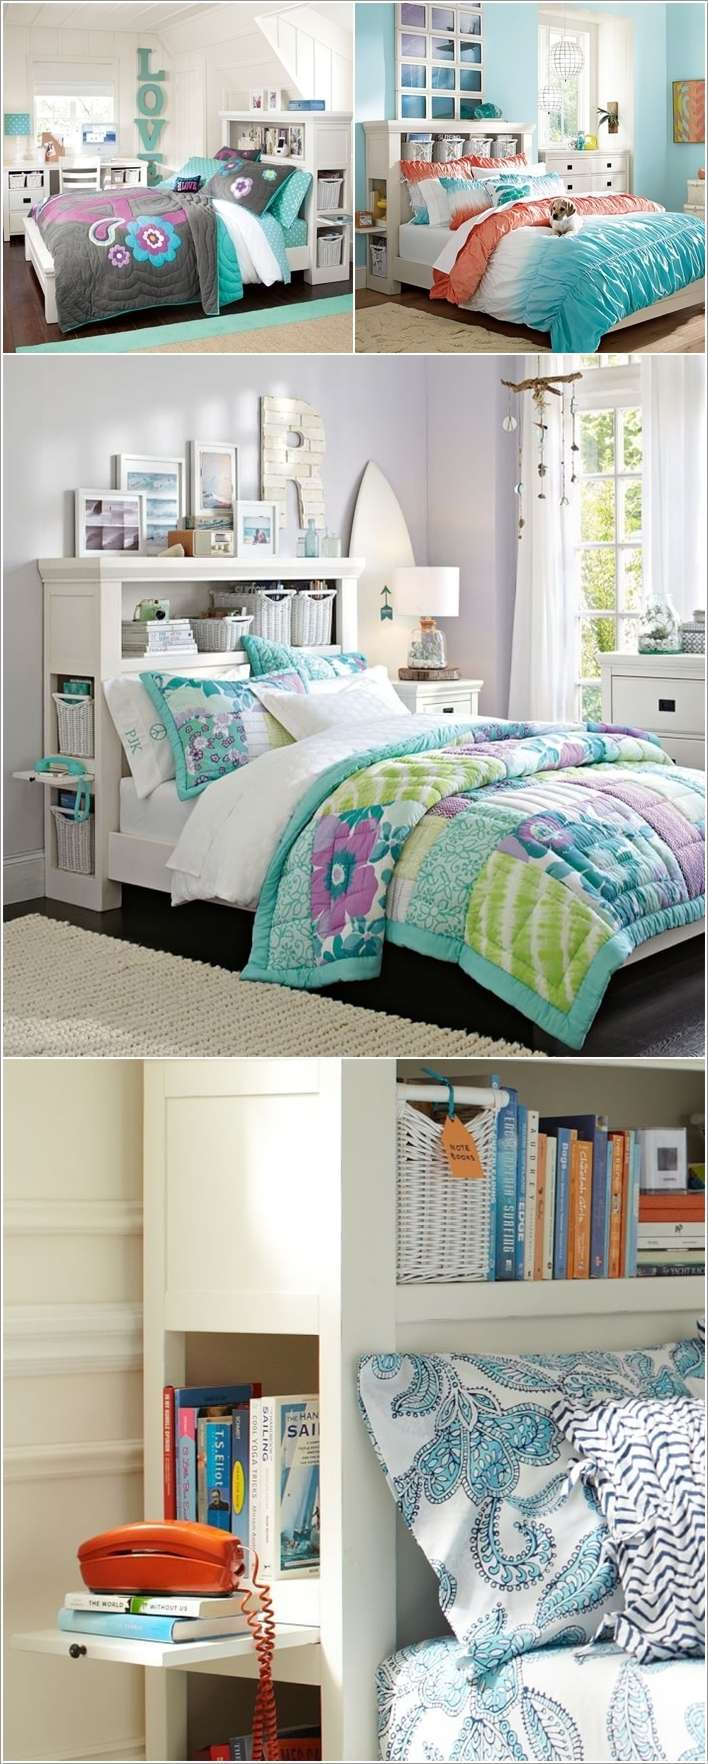 11  15 Space-Saving Bed Designs for Your Kids' Room 1120